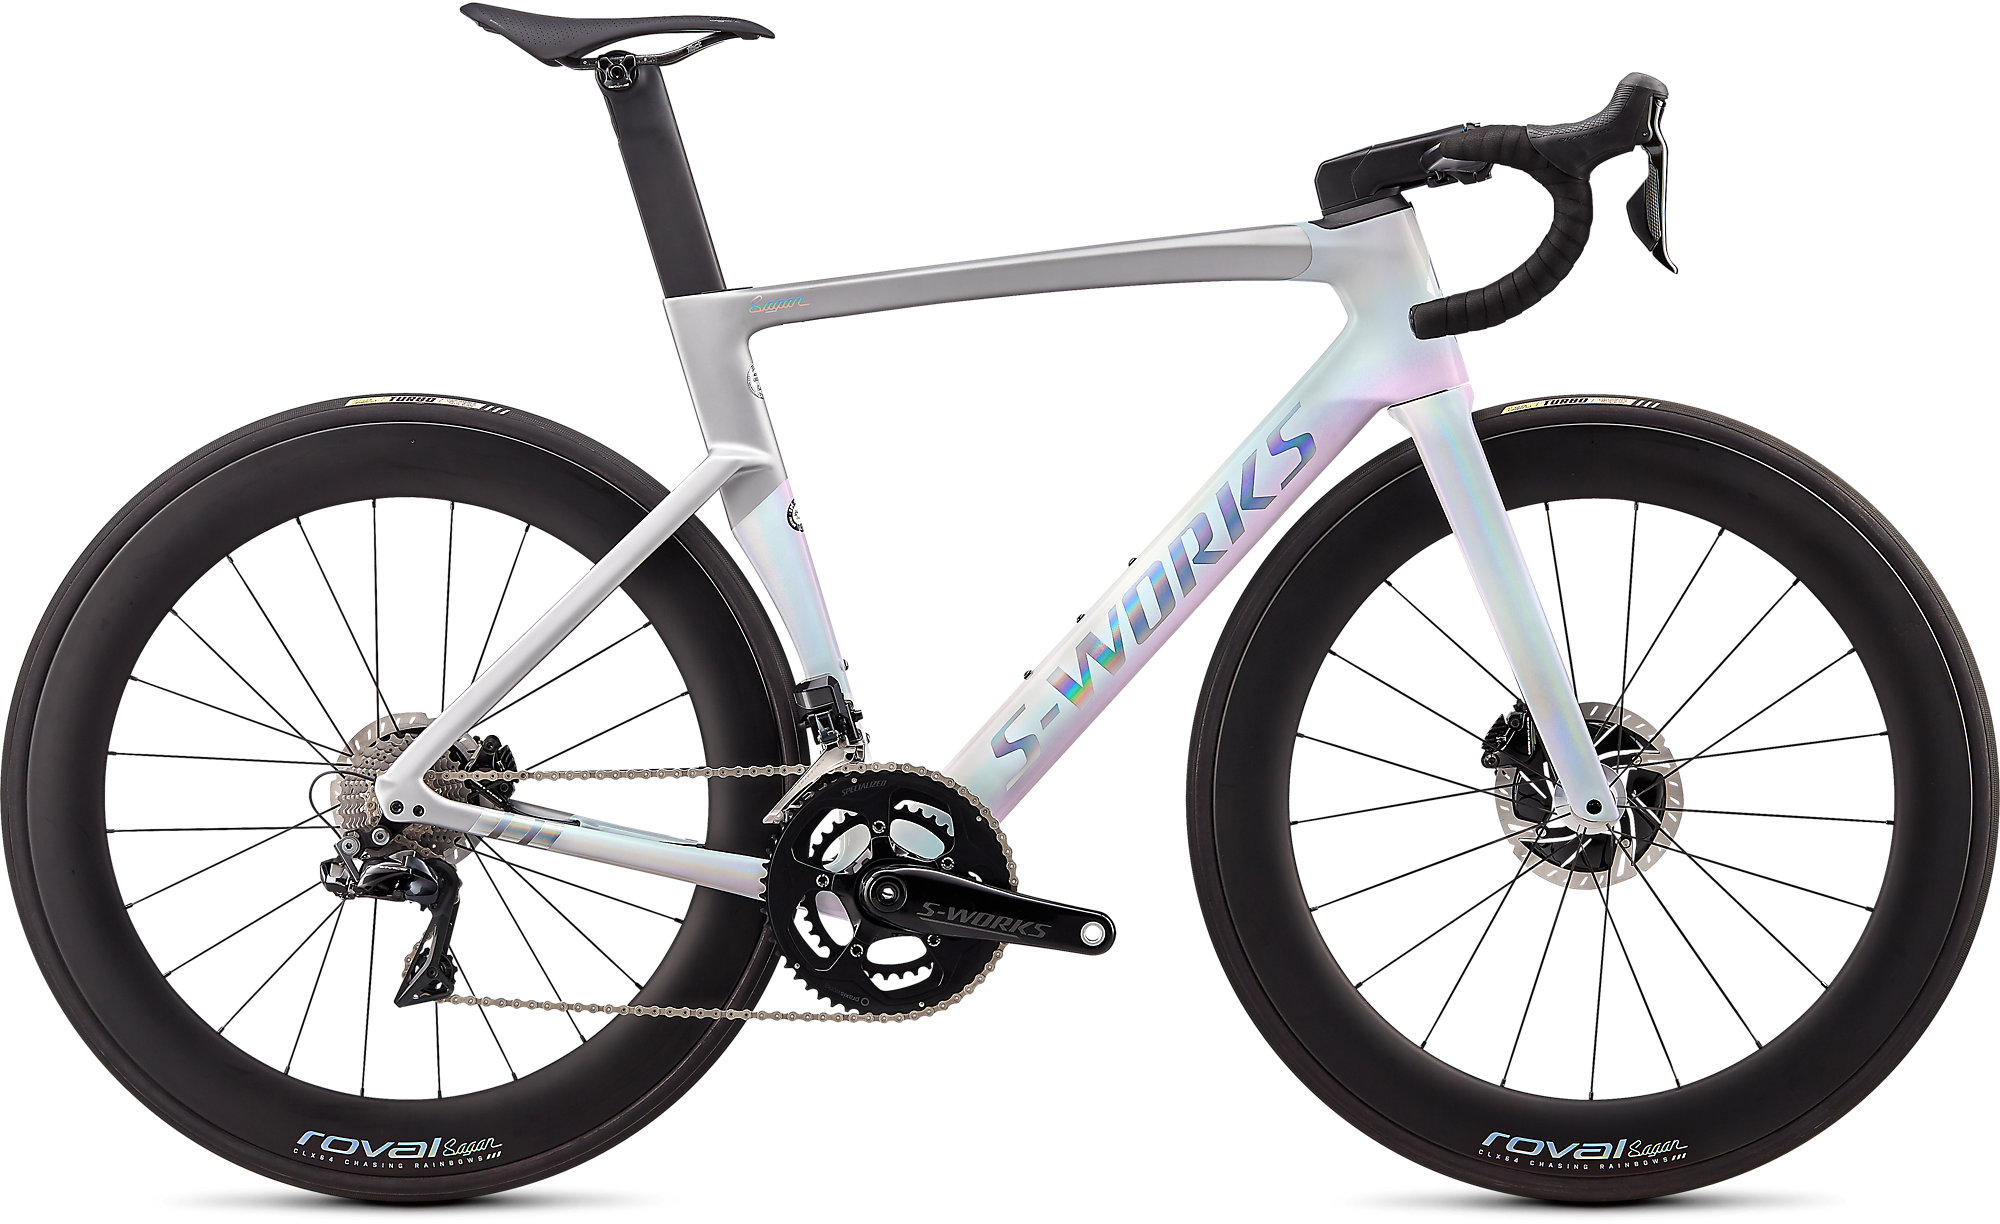 1328f0bc0 2020 Specialized S-Works Venge Di2 – Sagan Collection LTD - Specialized  Concept Store